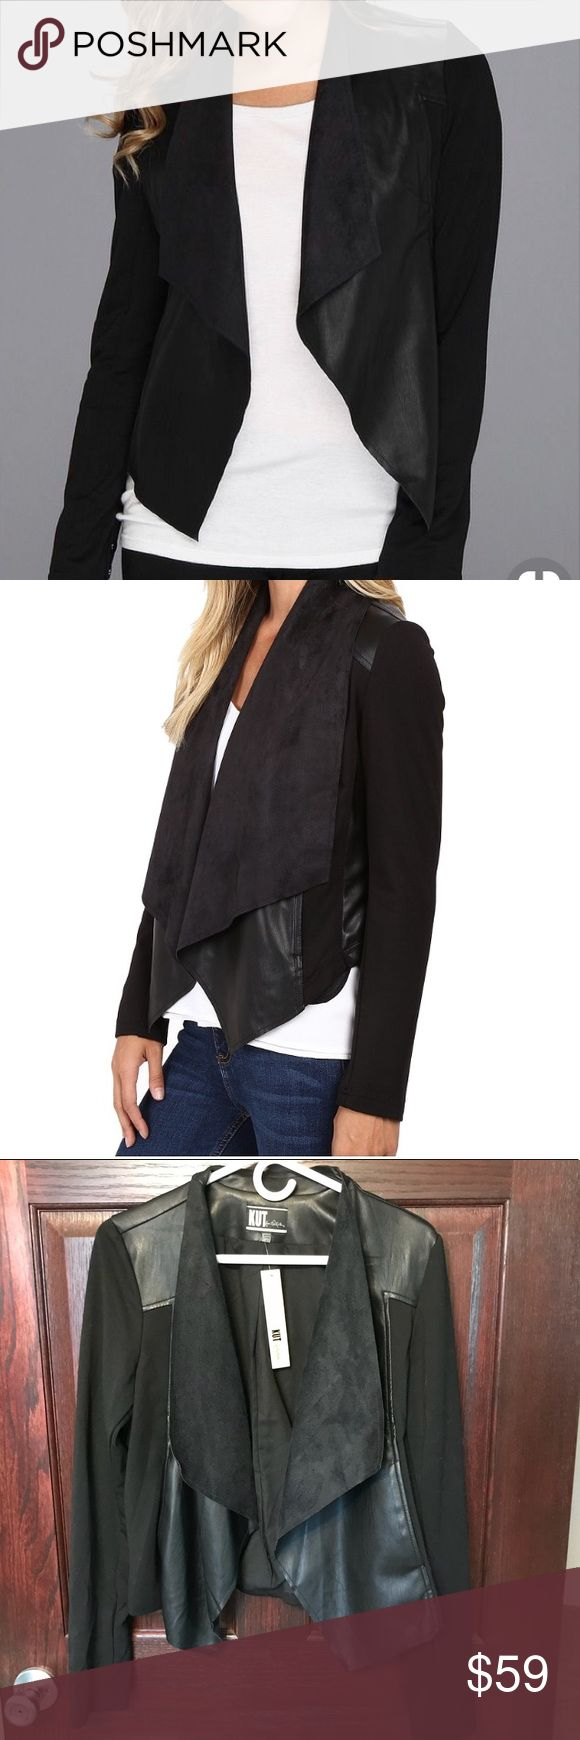 NWT - Kut From the Kloth Faux Leather Jacket Super soft and comfy and has a bit of stretch! Great for layering and for fall. Kut from the Kloth Jackets & Coats Blazers